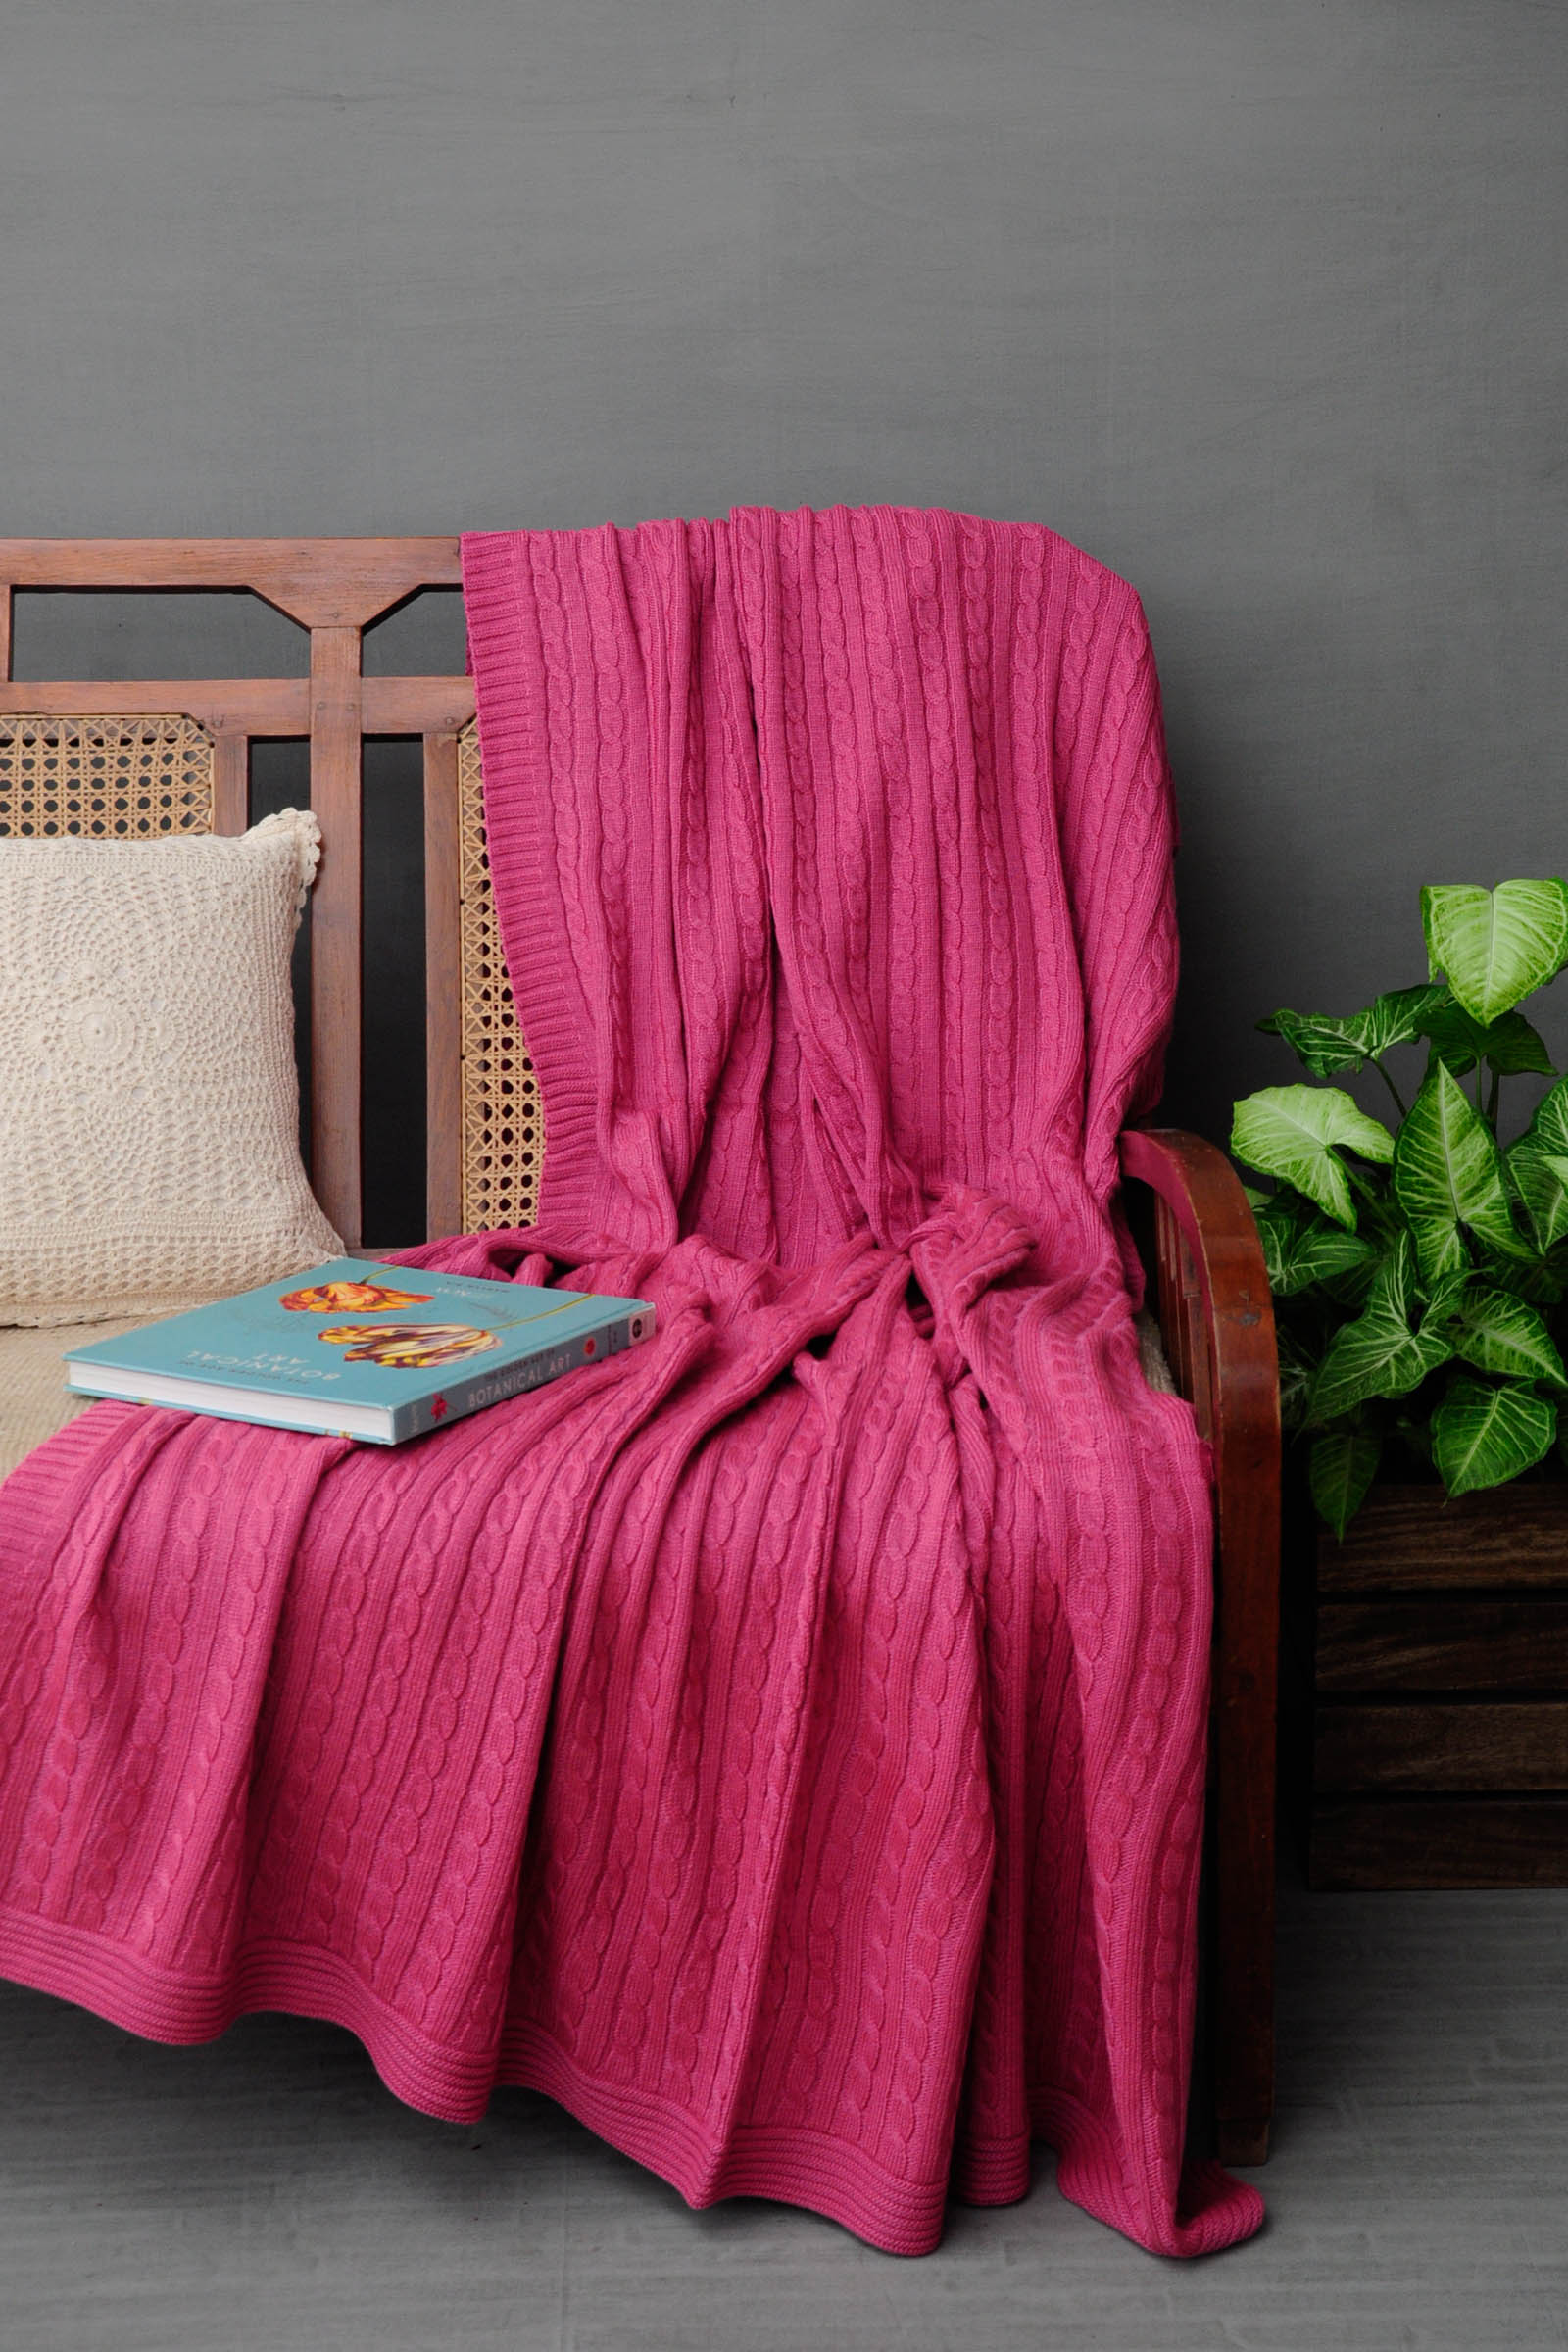 Woolen Throws Pink